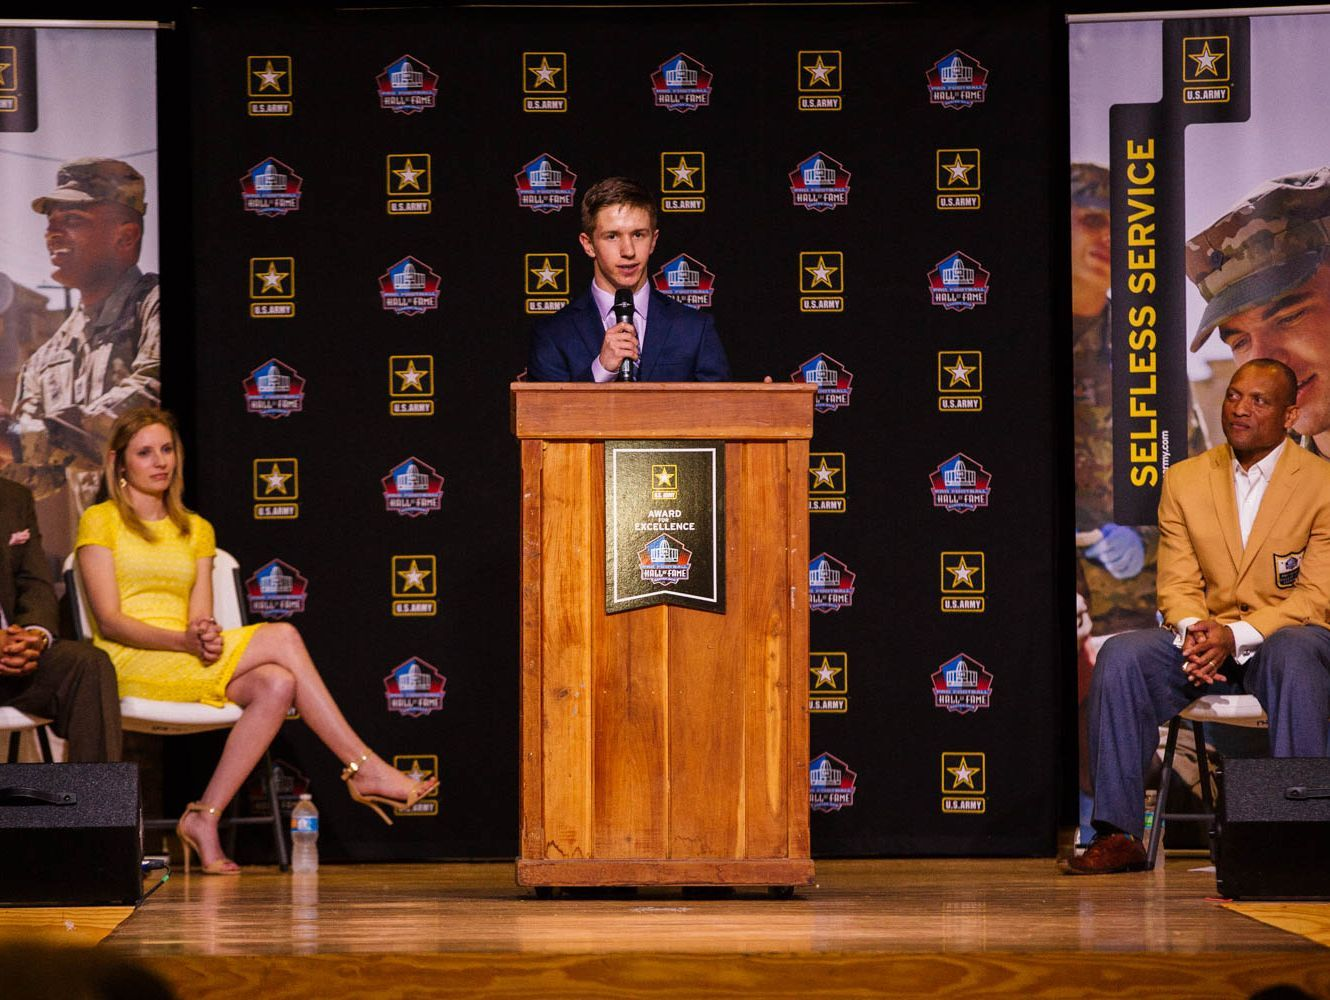 Cabool High School senior Logan Miller (center) addresses the student body during an assembly in his honor featuring Pro Football Hall-of-Famer Aeneas Williams (right)